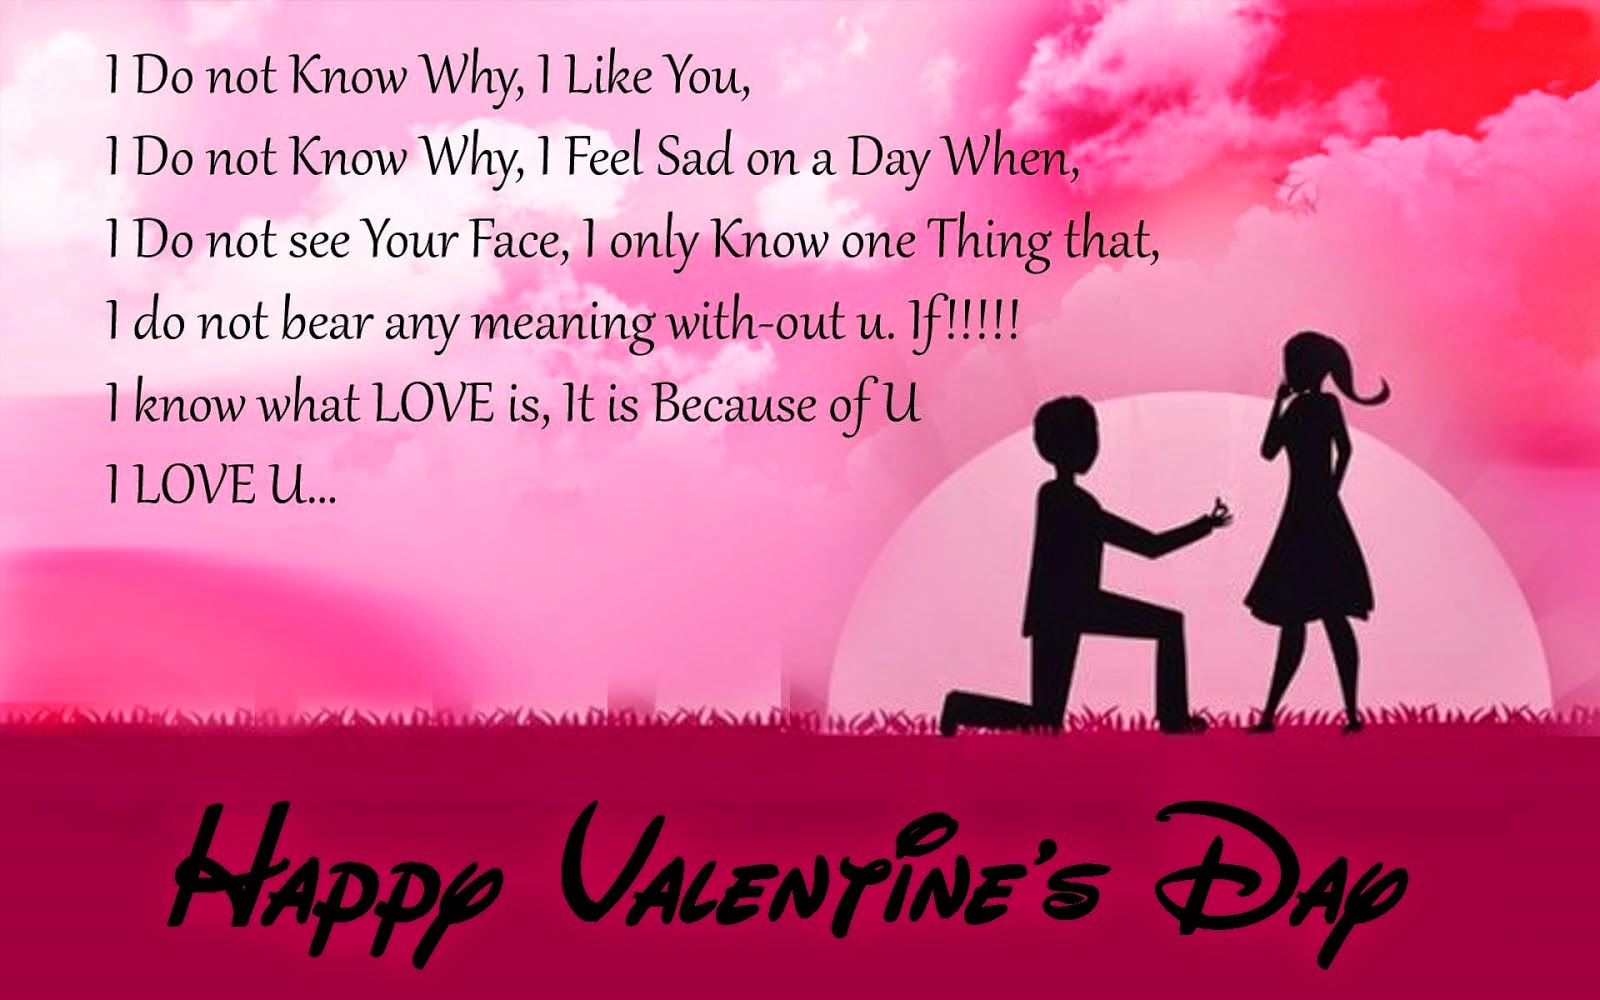 happy valentines day quotes - Happy Valentines Day Text Message